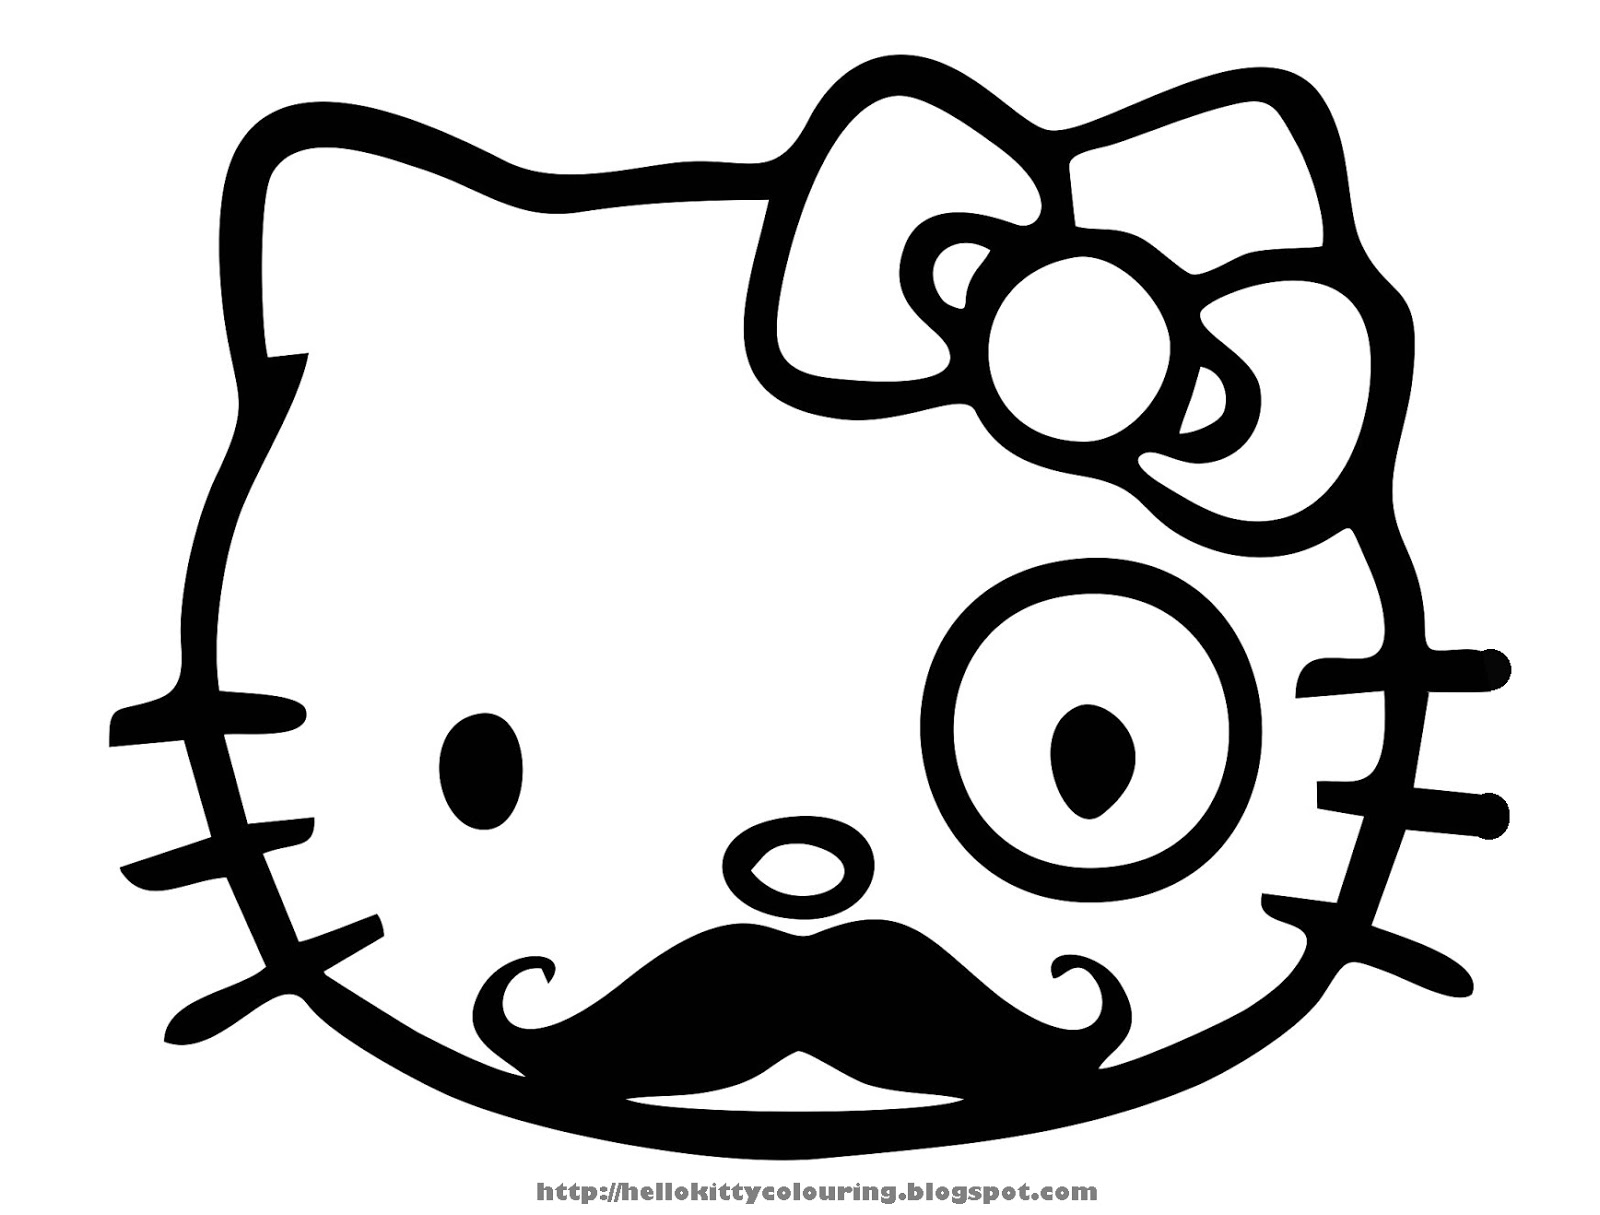 Hello kitty coloring pages wallpapers 1600x1215